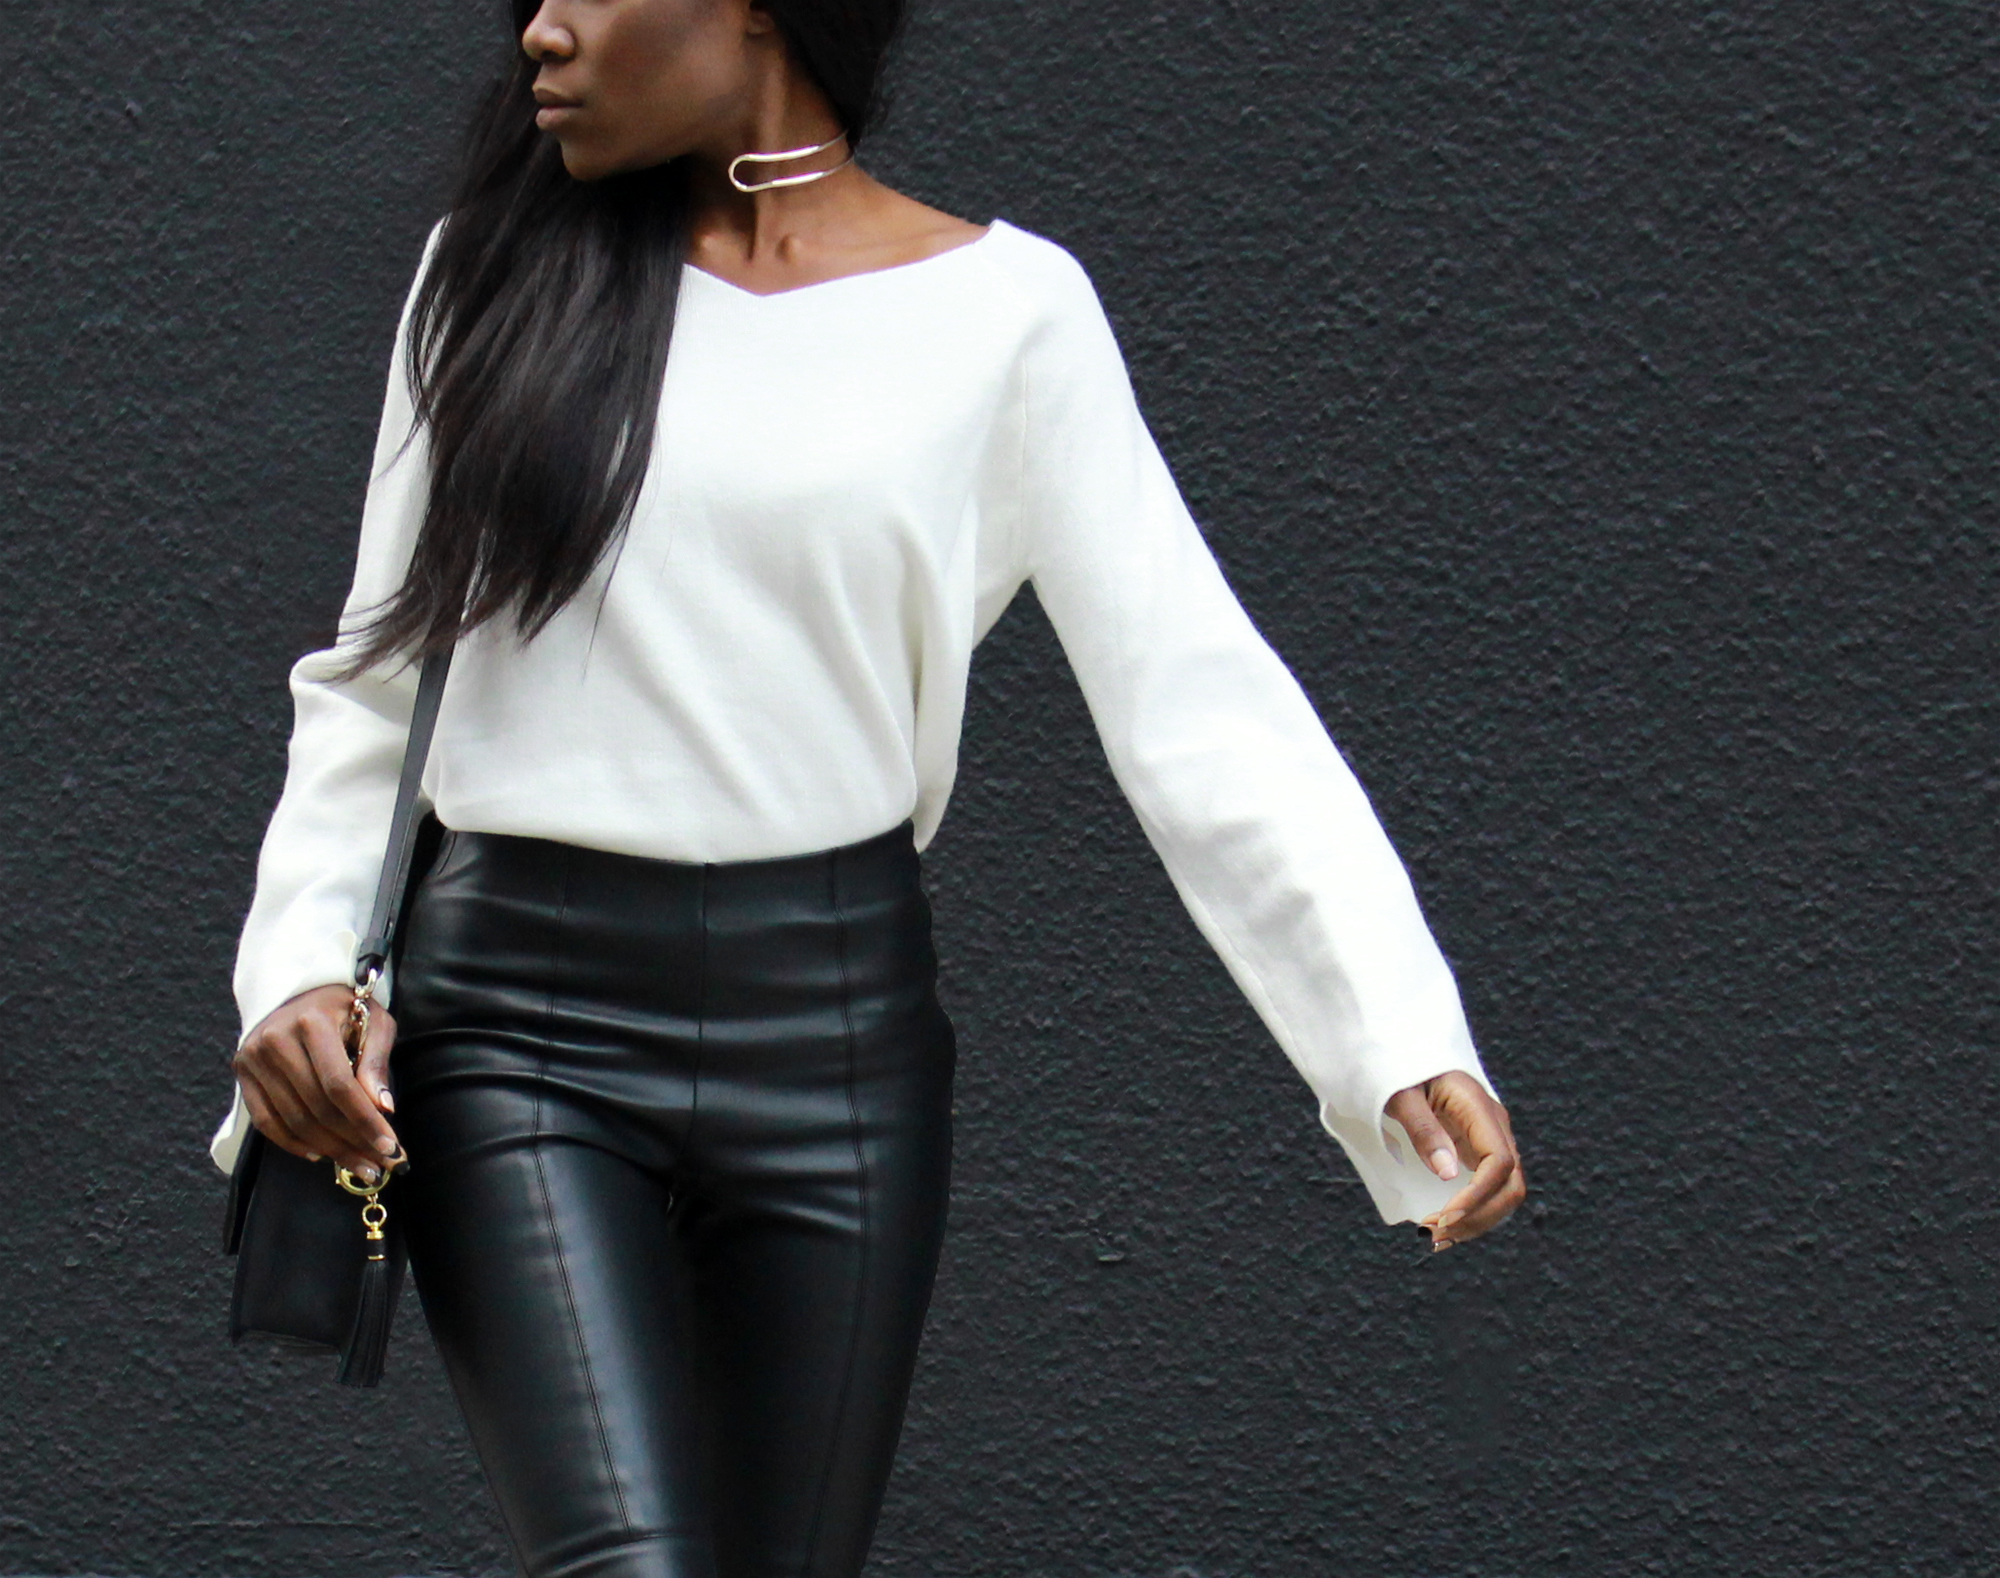 bell-sleeve-trend